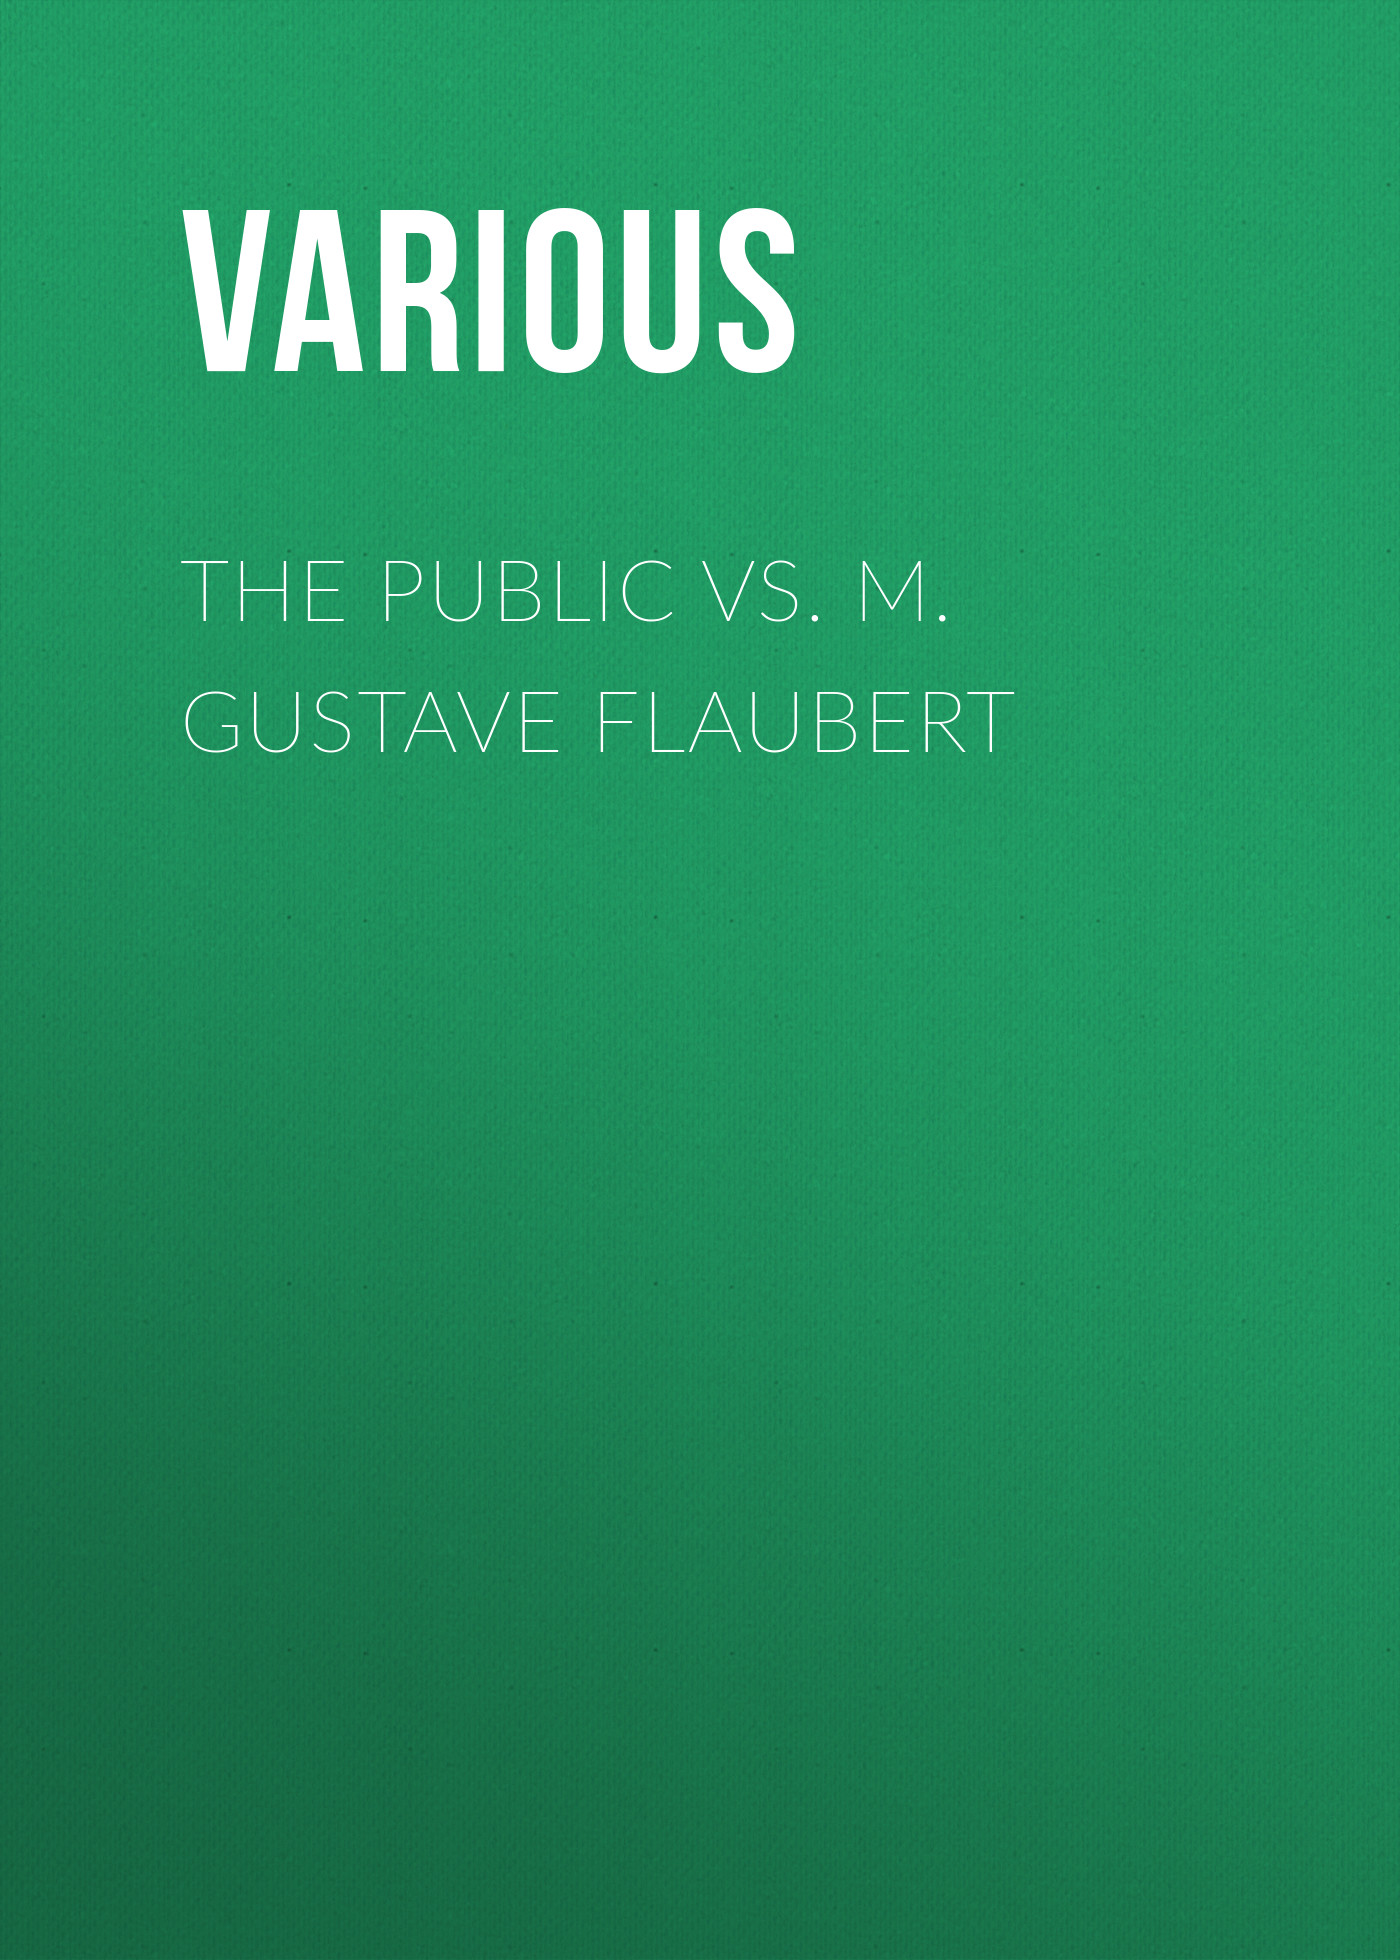 The Public vs. M. Gustave Flaubert